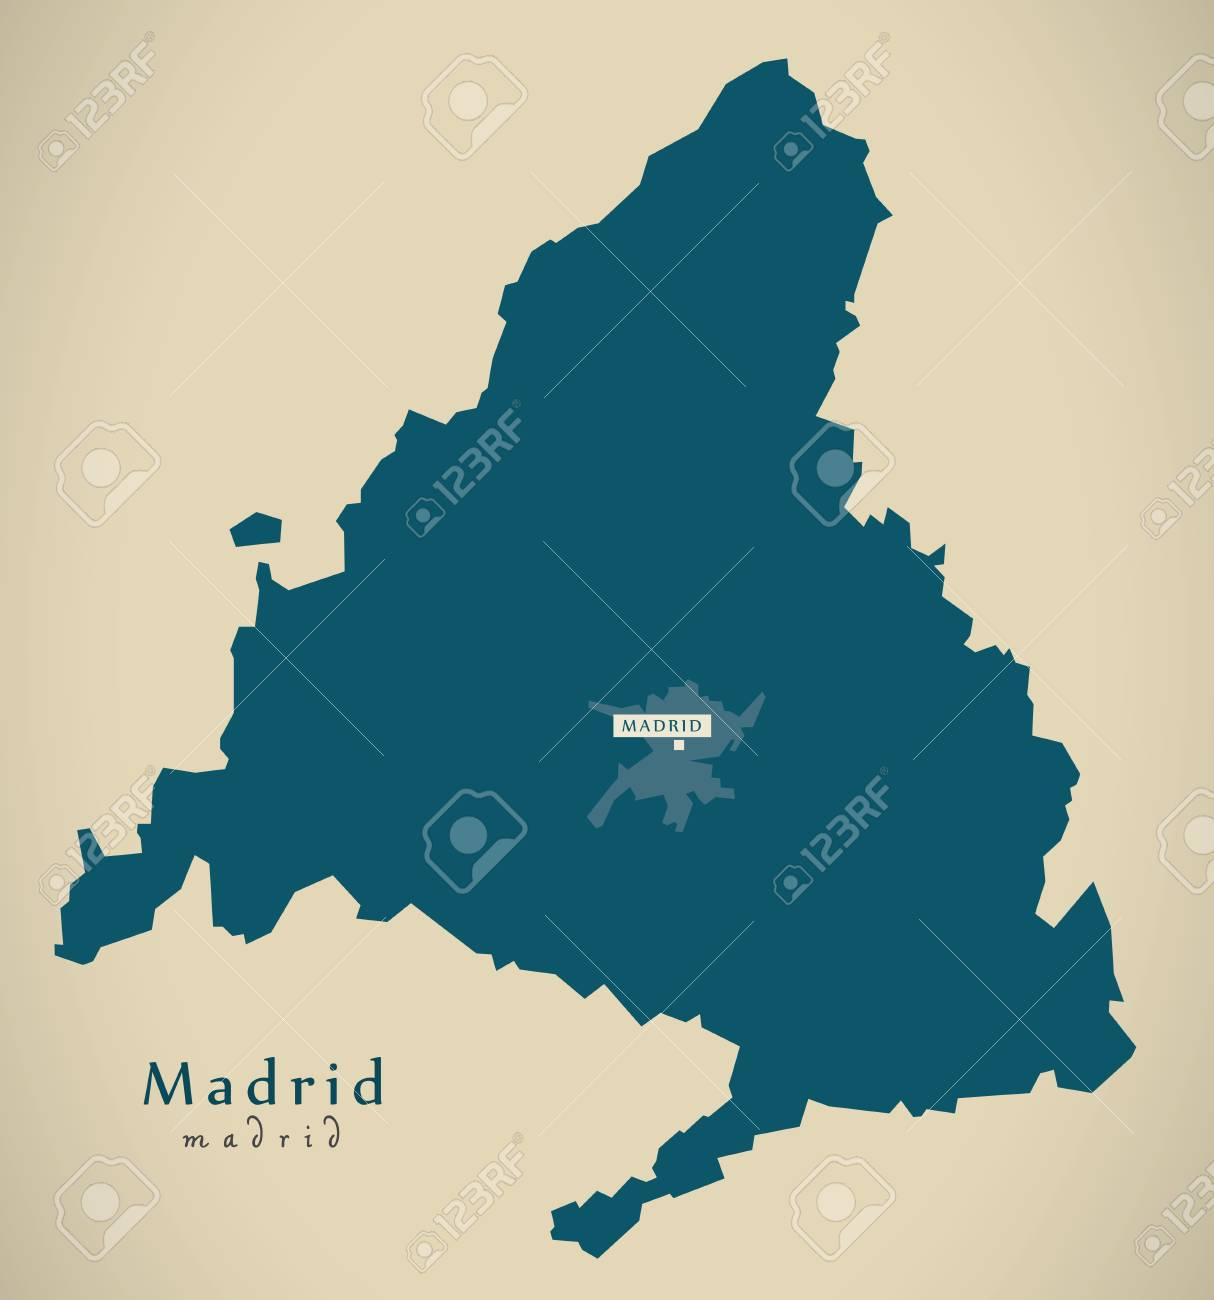 Modern Map - Madrid Spain ES Illustration Stock Photo, Picture And ...